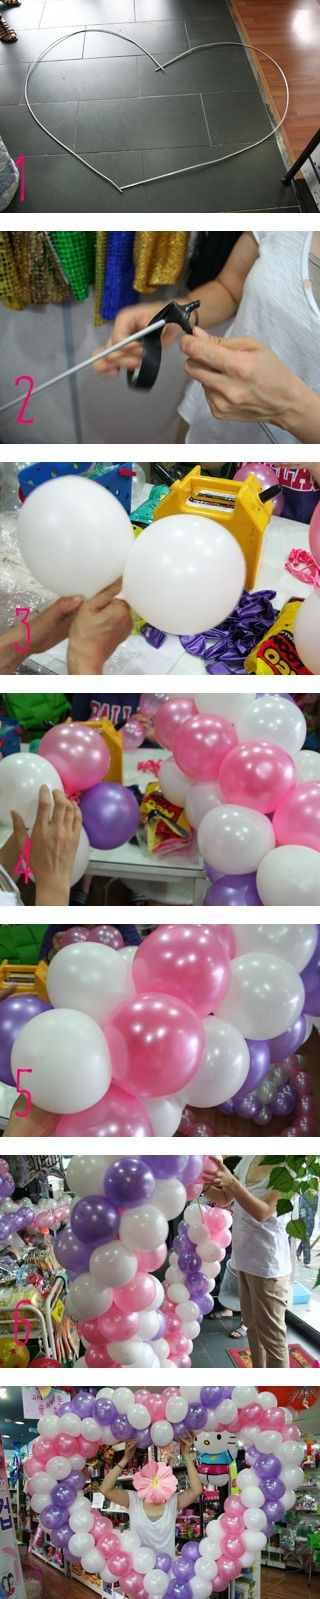 Pin by randah ali on pinterest for Balloon arch tape